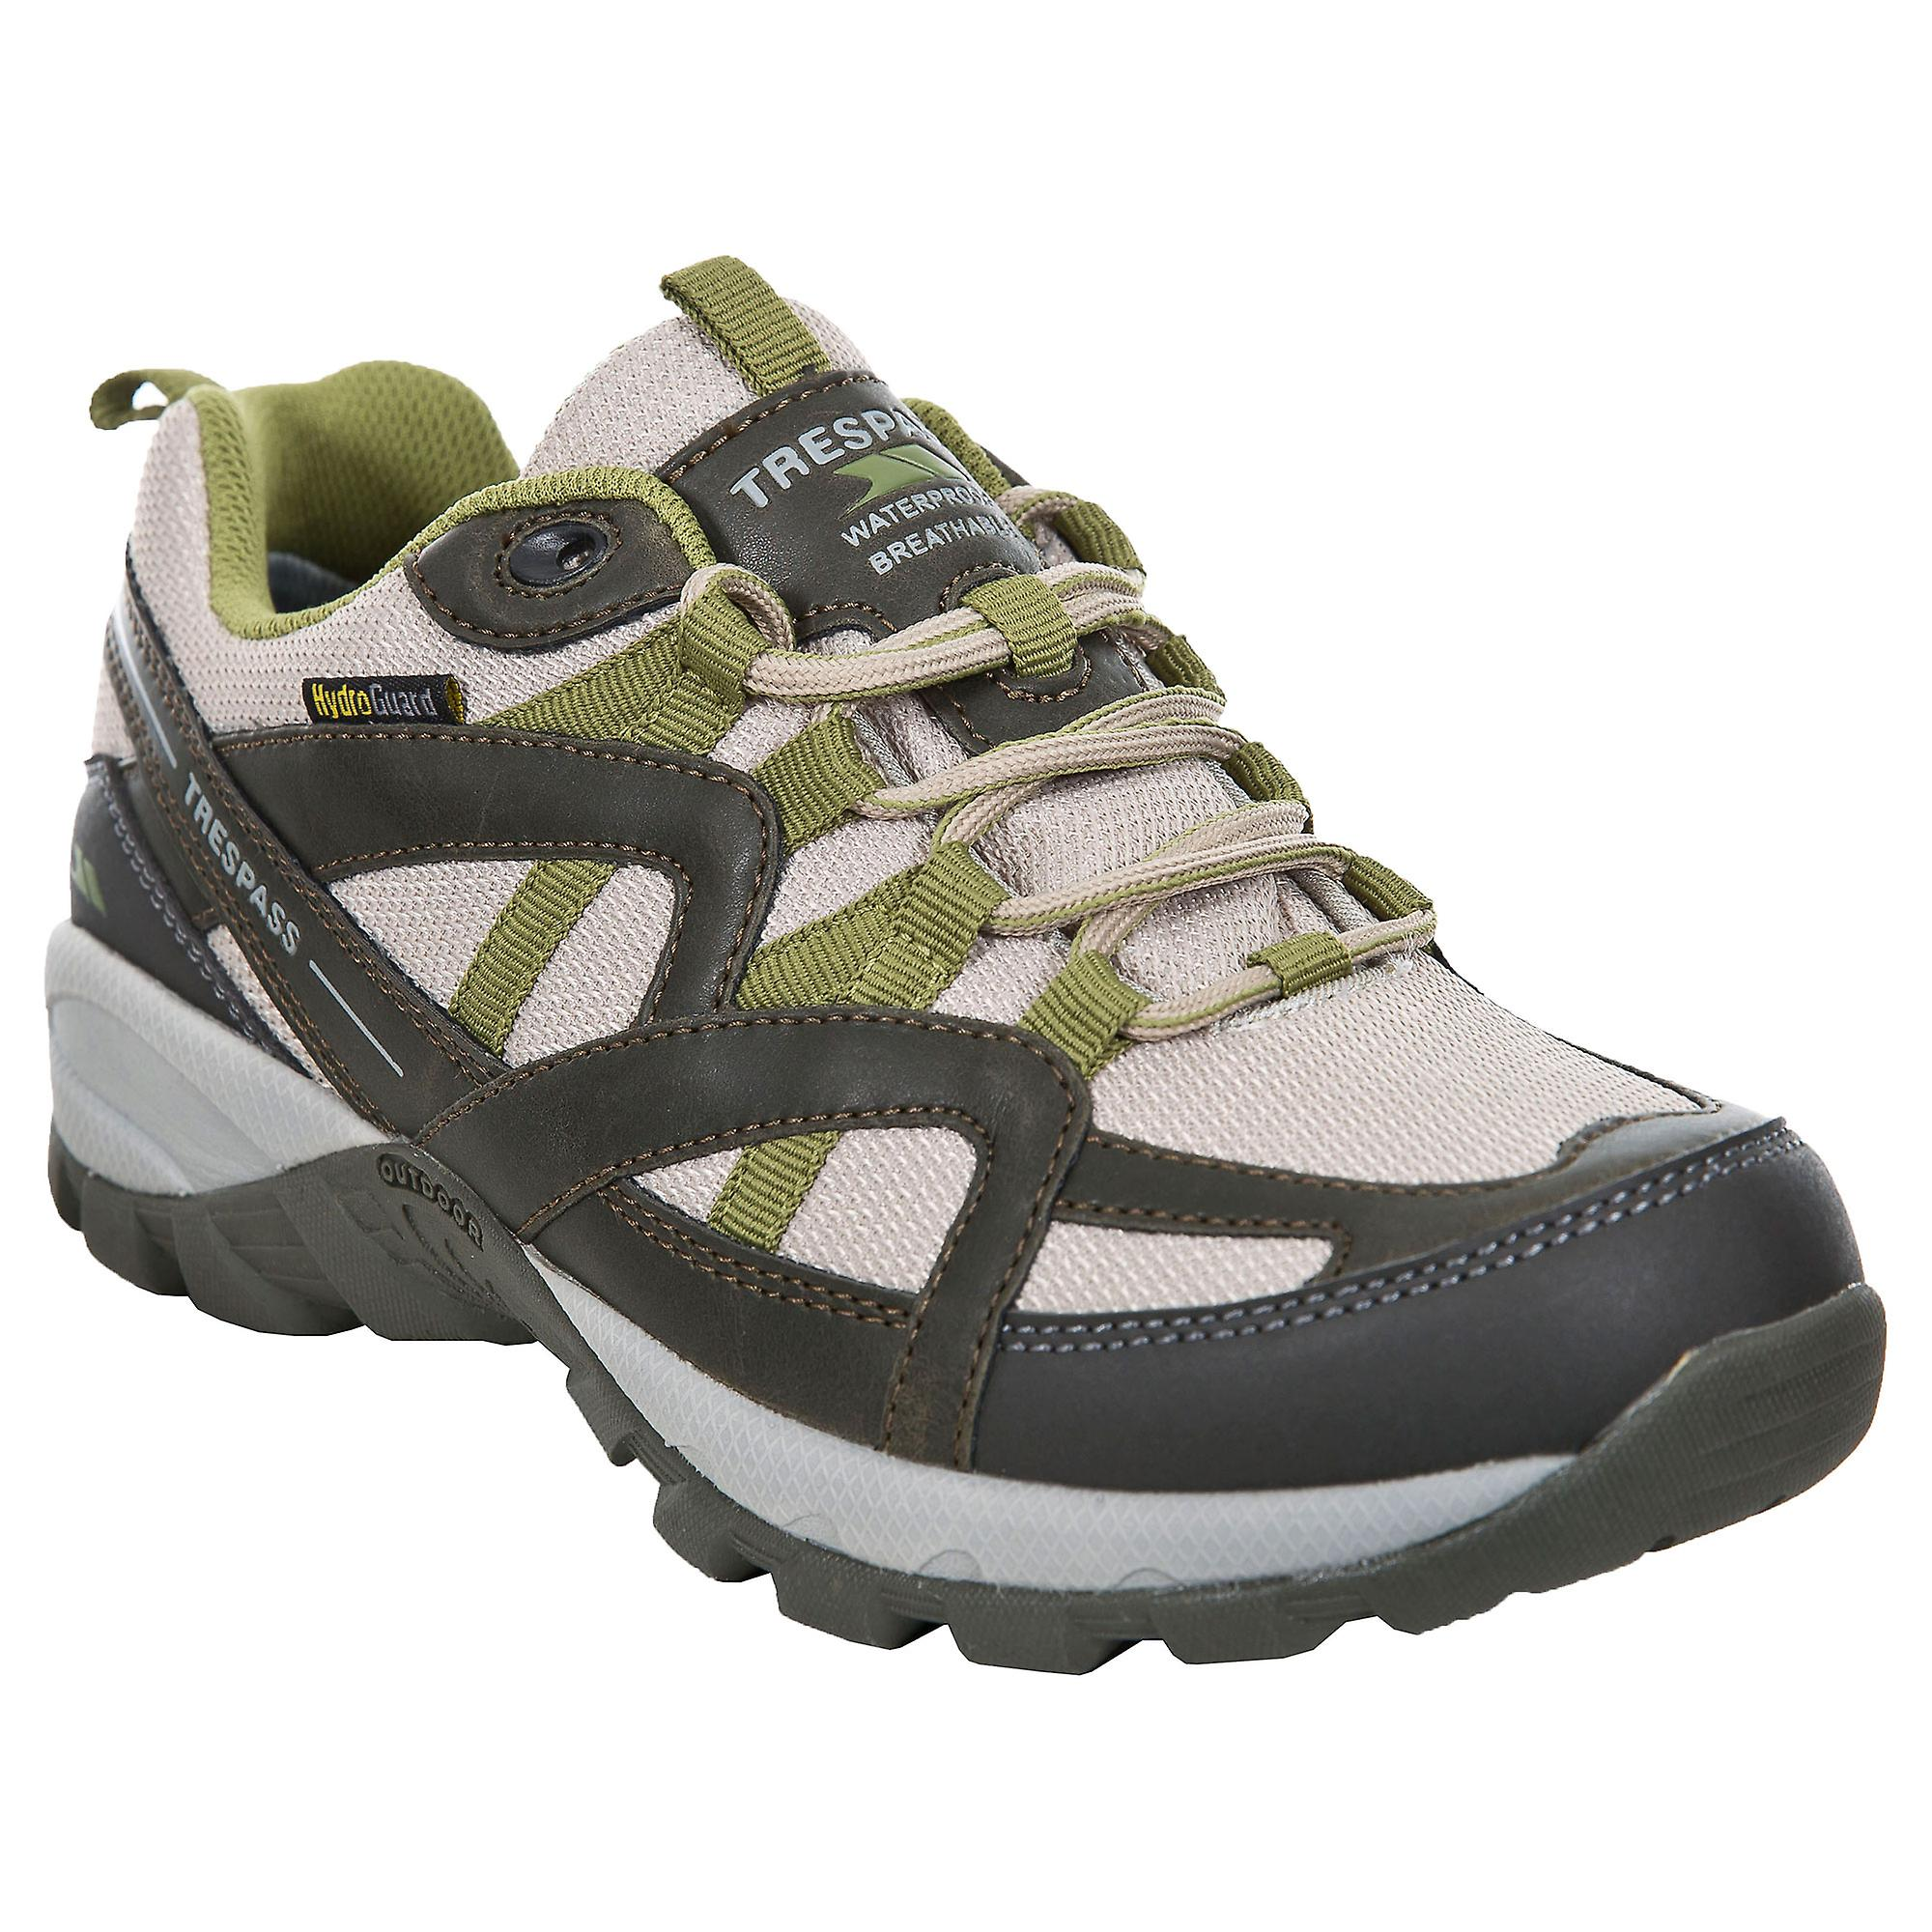 Trespass Ladies Talus Shoe